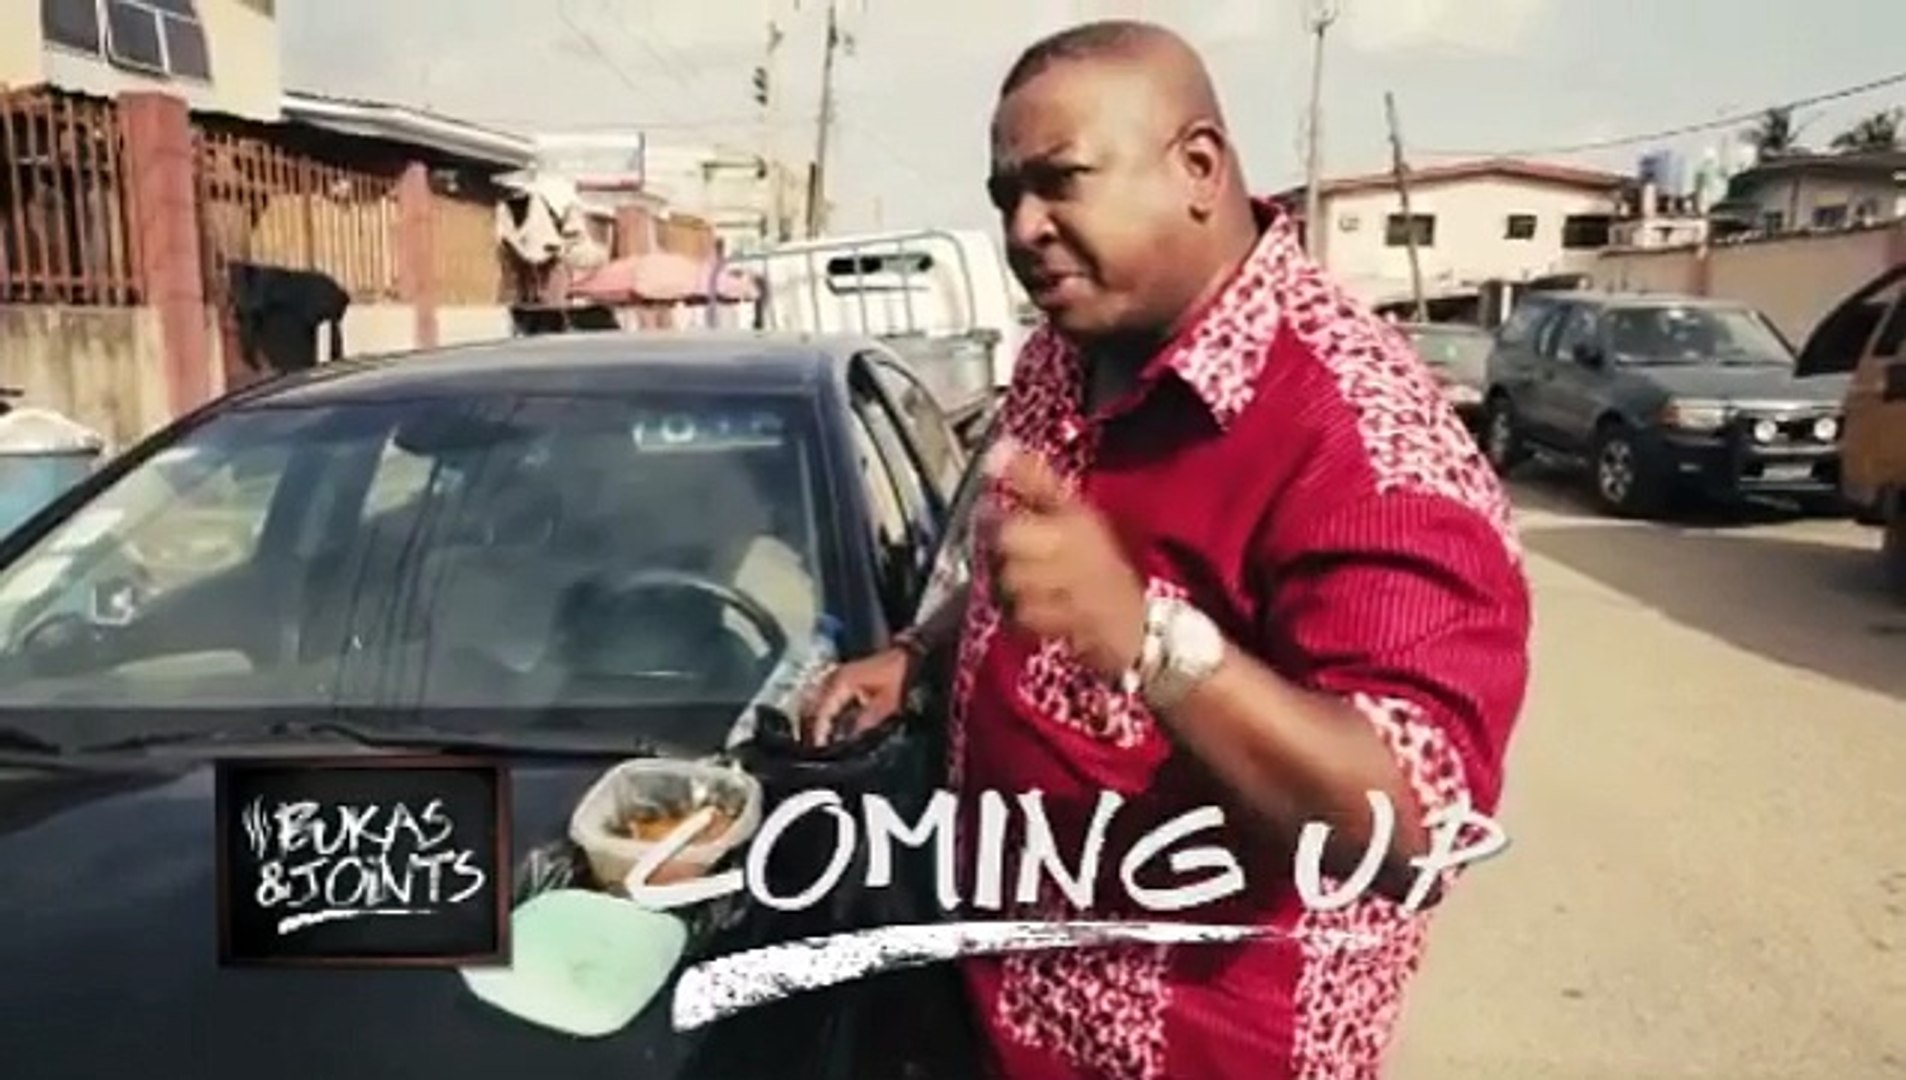 Bukas and Joints a Nigerian and African food travel show